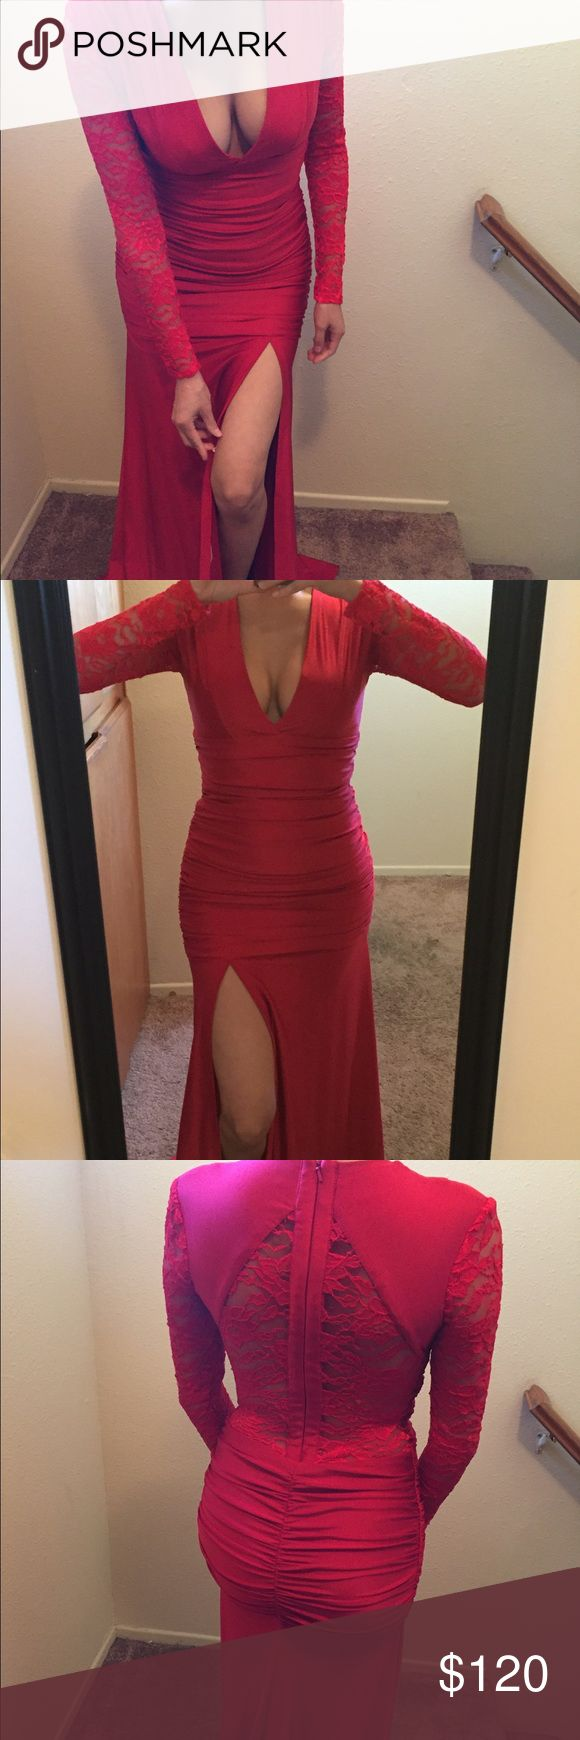 Red long sleeve dress Perfect for a cold weather! The dress is bright red , very stretchy material, it molds the body , the back and sleeves are lace , one high leg slit , made in USA , the material is thick , definitely a show stopper, picture does no justice atria Dresses Prom